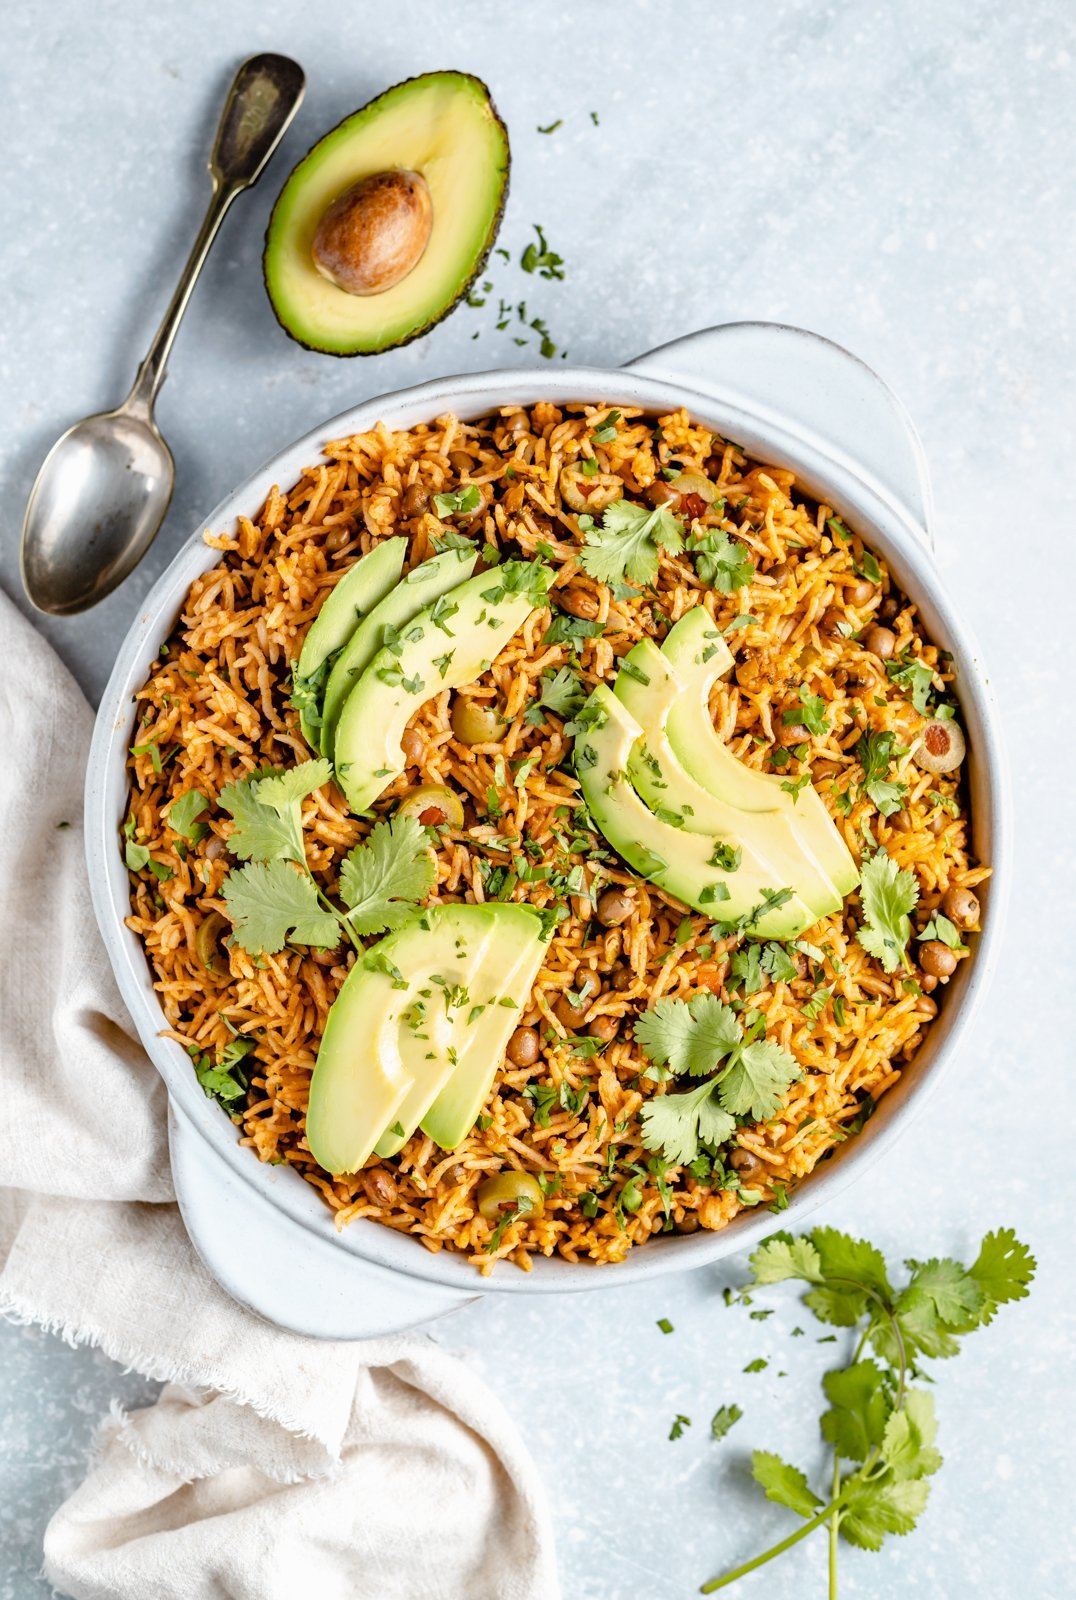 puerto rican arroz con gandules in a bowl topped with avocado slices